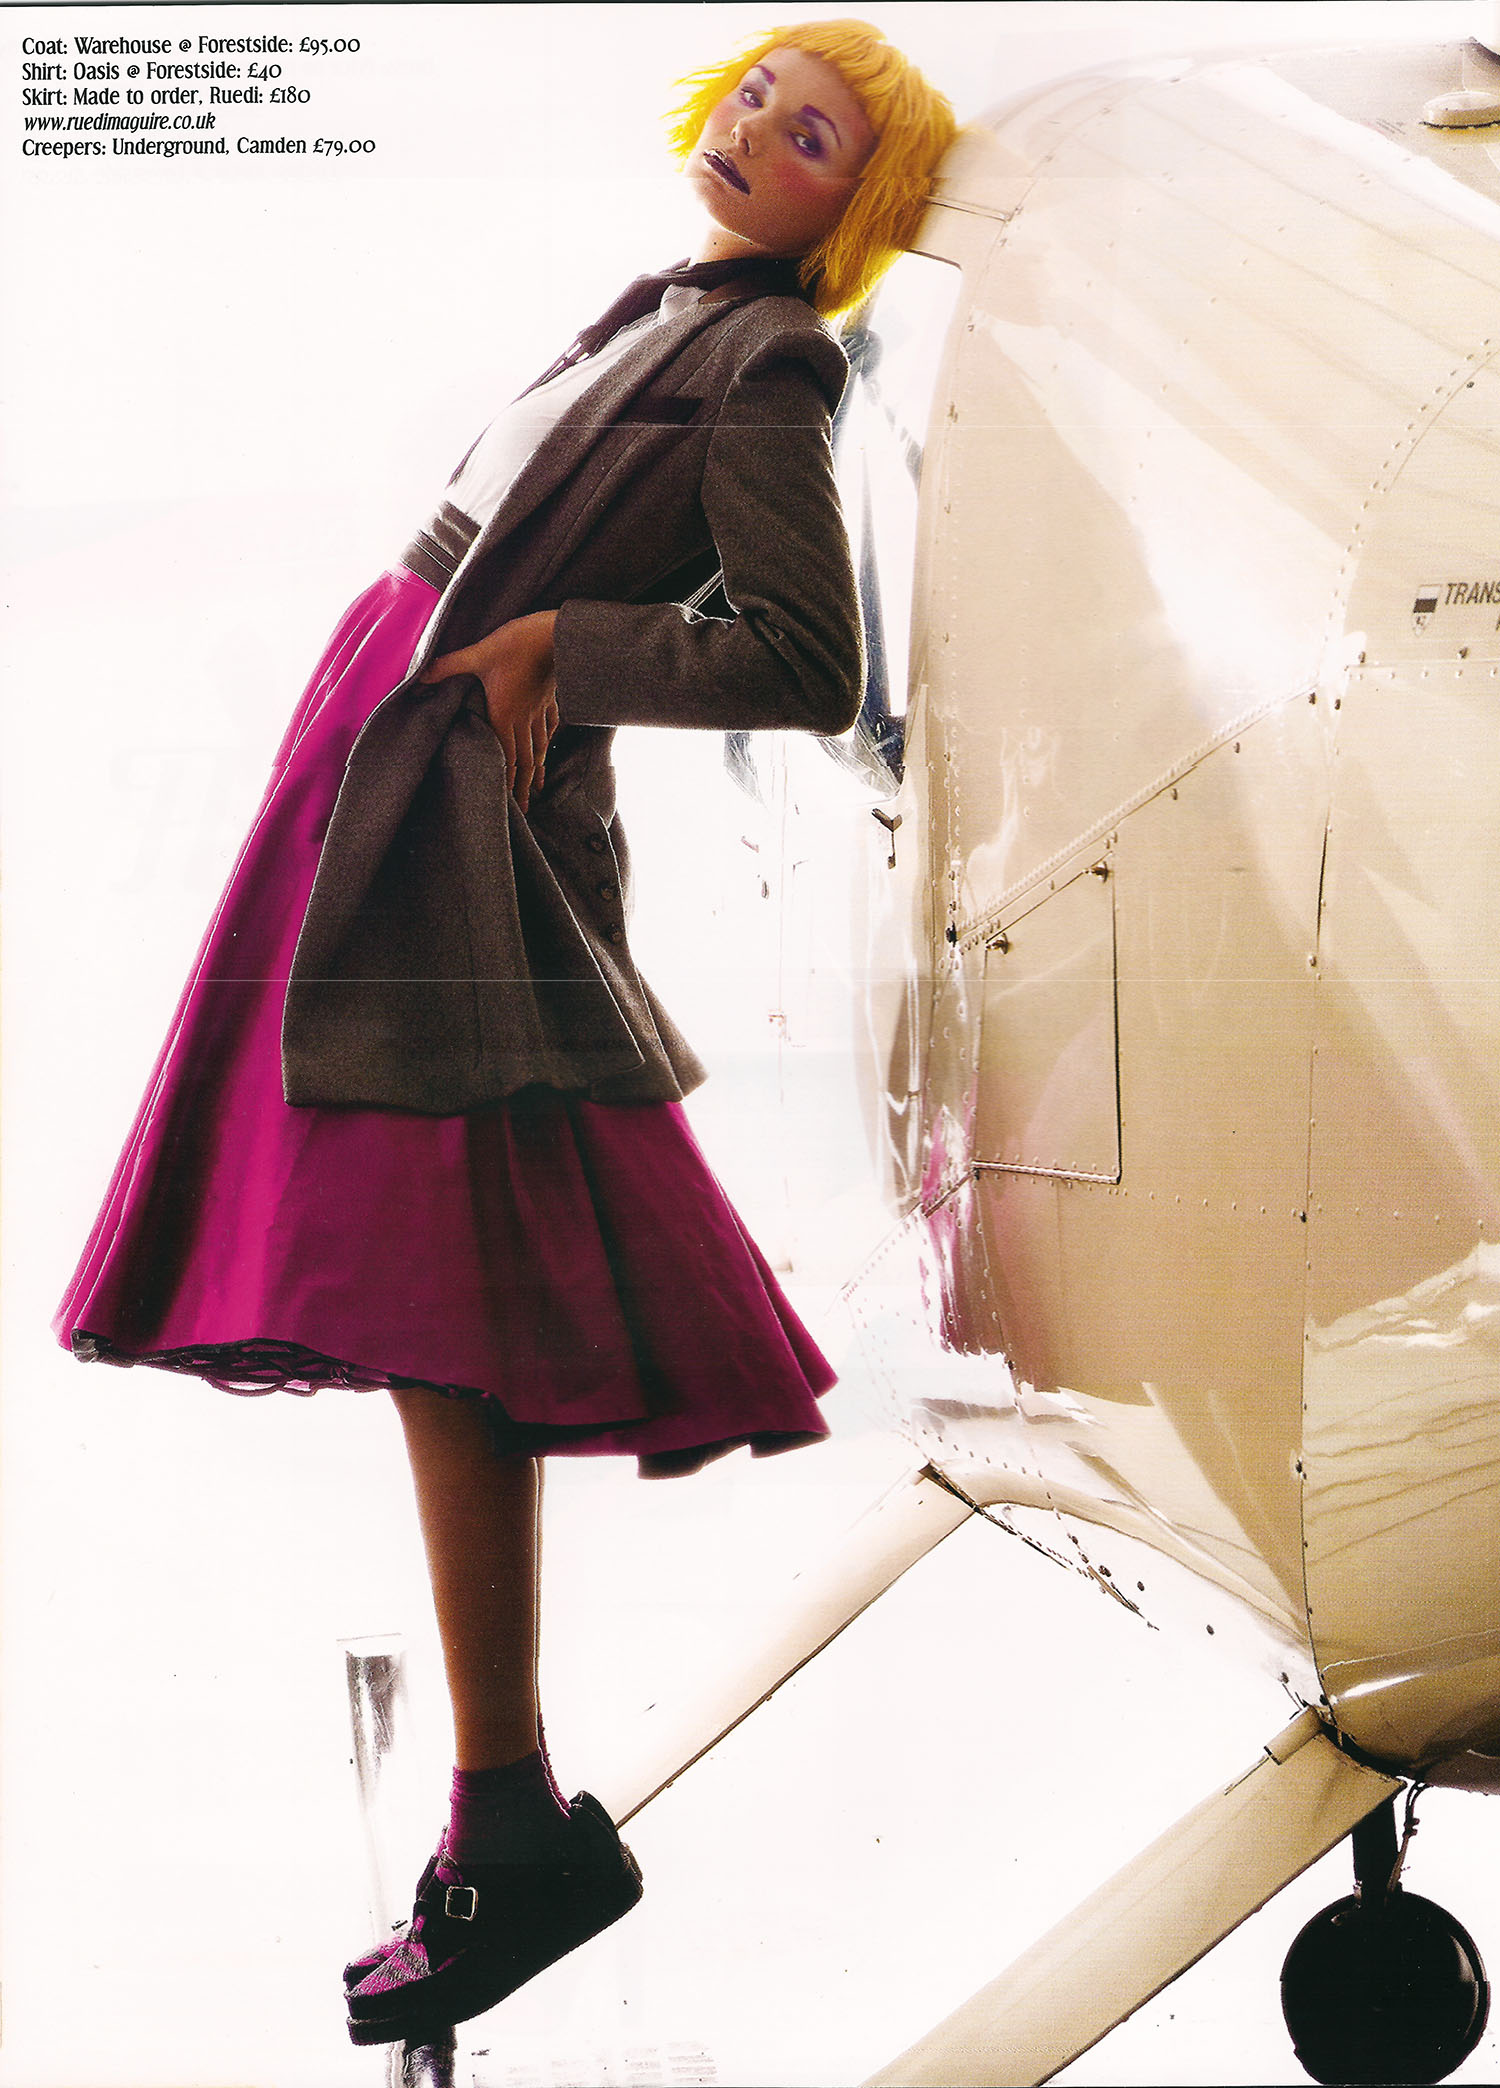 Northern Woman AW 2011, Flying into Fashion, Skirt by RUEDI